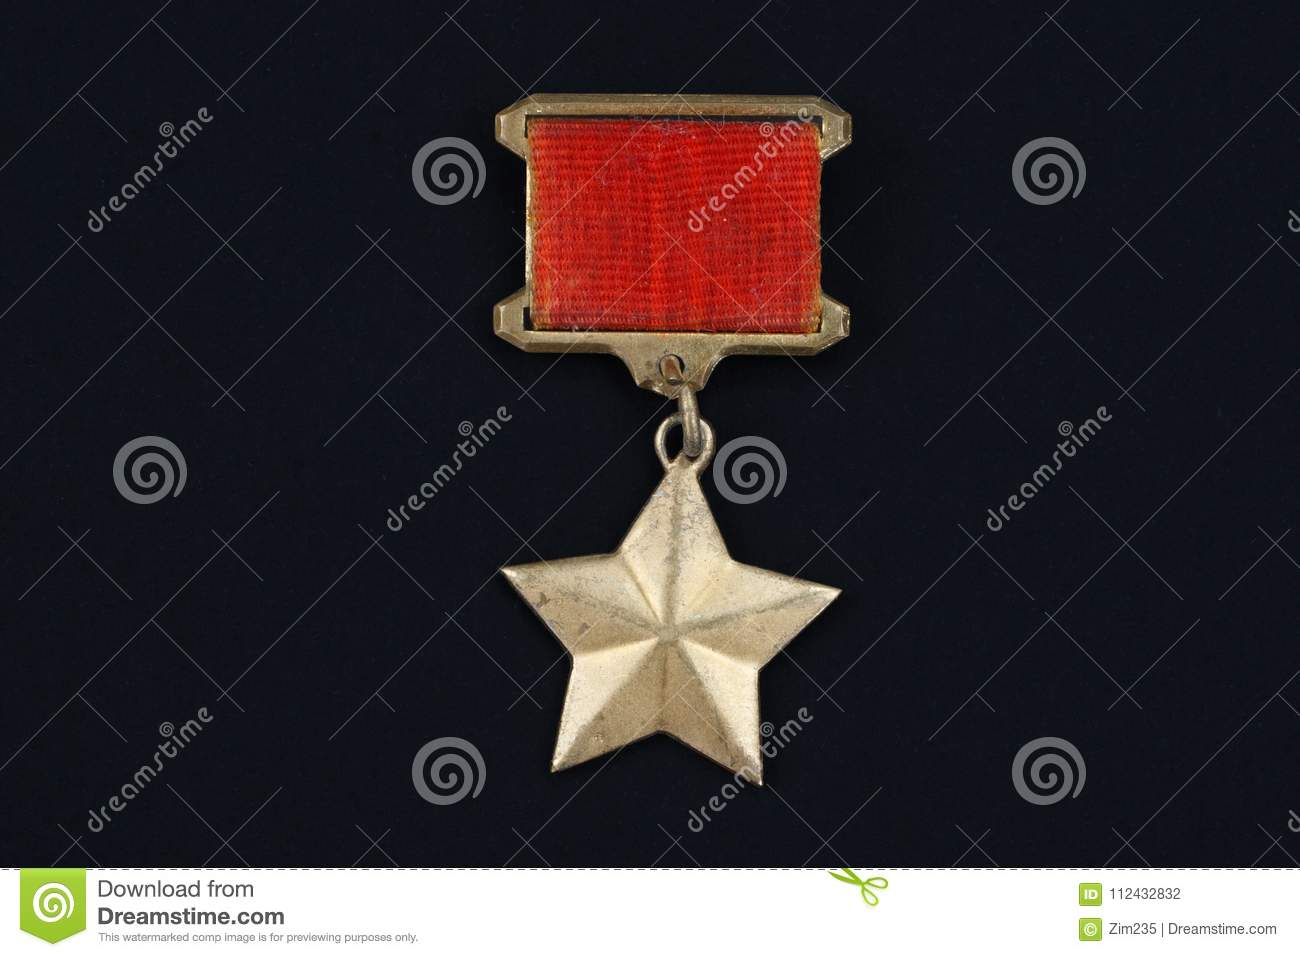 The title of Hero of the Soviet Union was awarded posthumously to General Karbyshev (28 fe 57